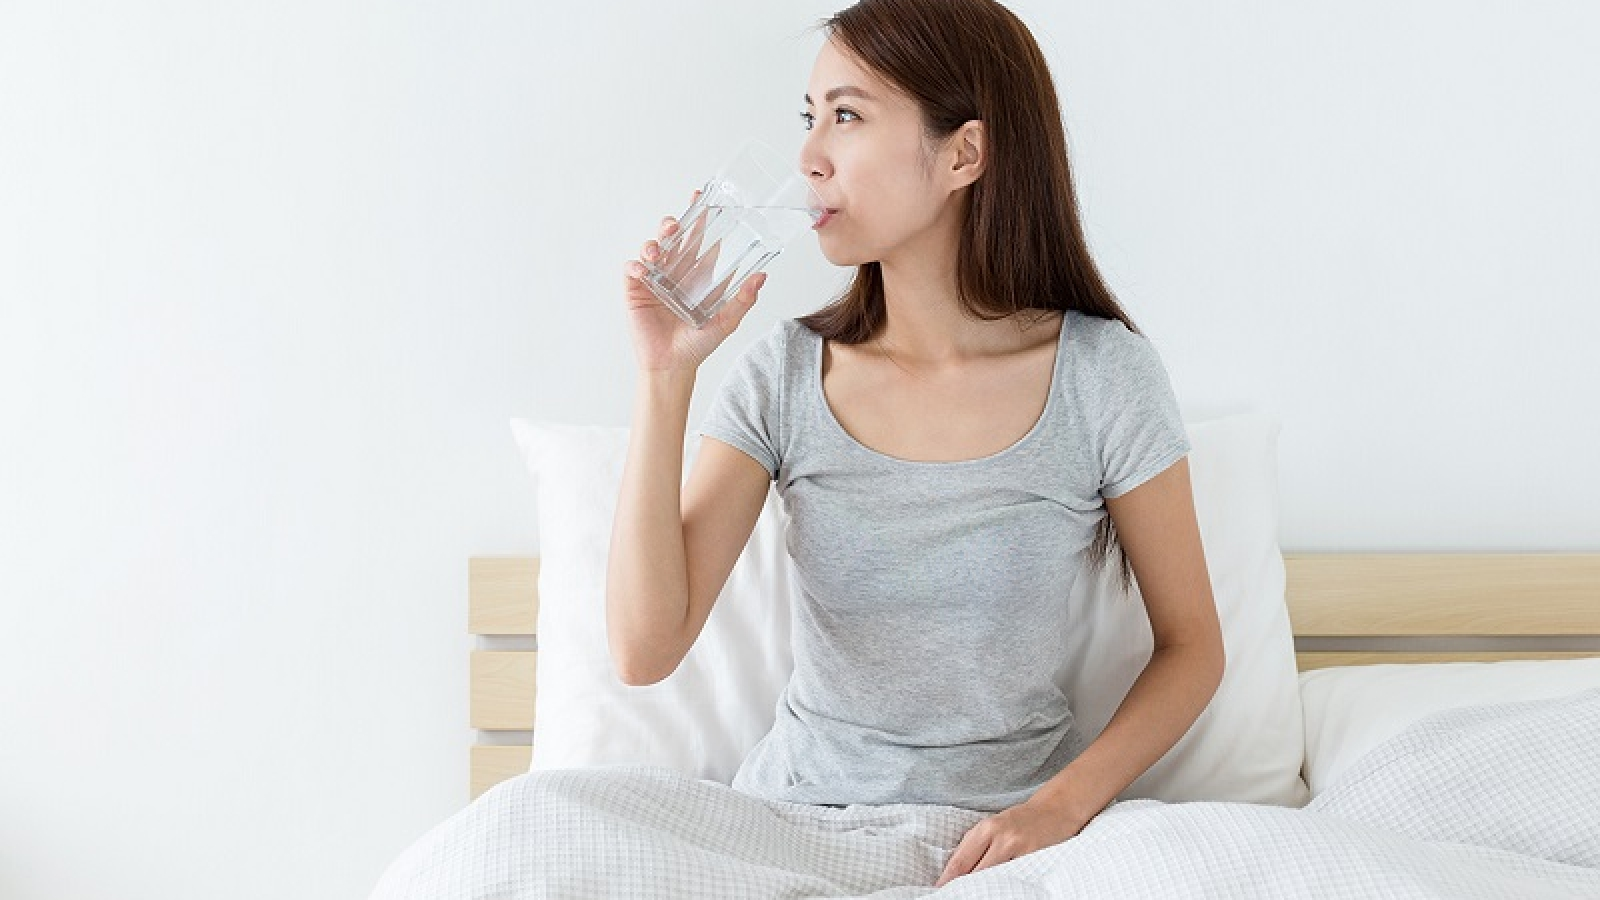 Drinking water before bed is good for your health